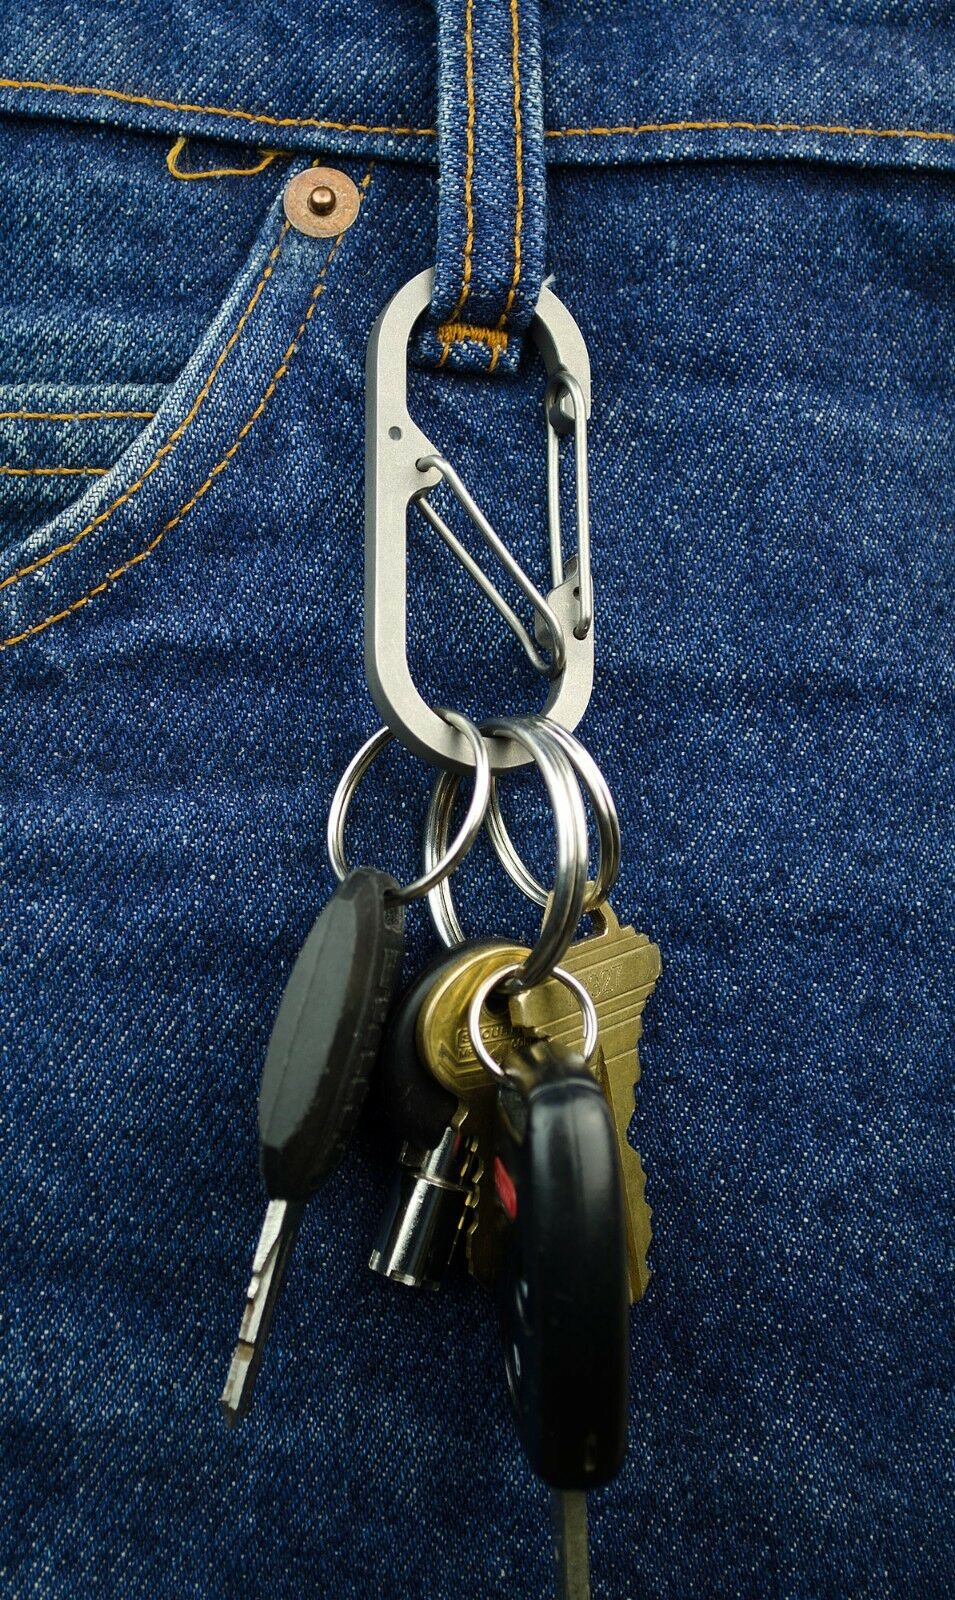 Titanium Binary Carabiner   Safety Cage   with Bottle Opener   EDC   IOMAA